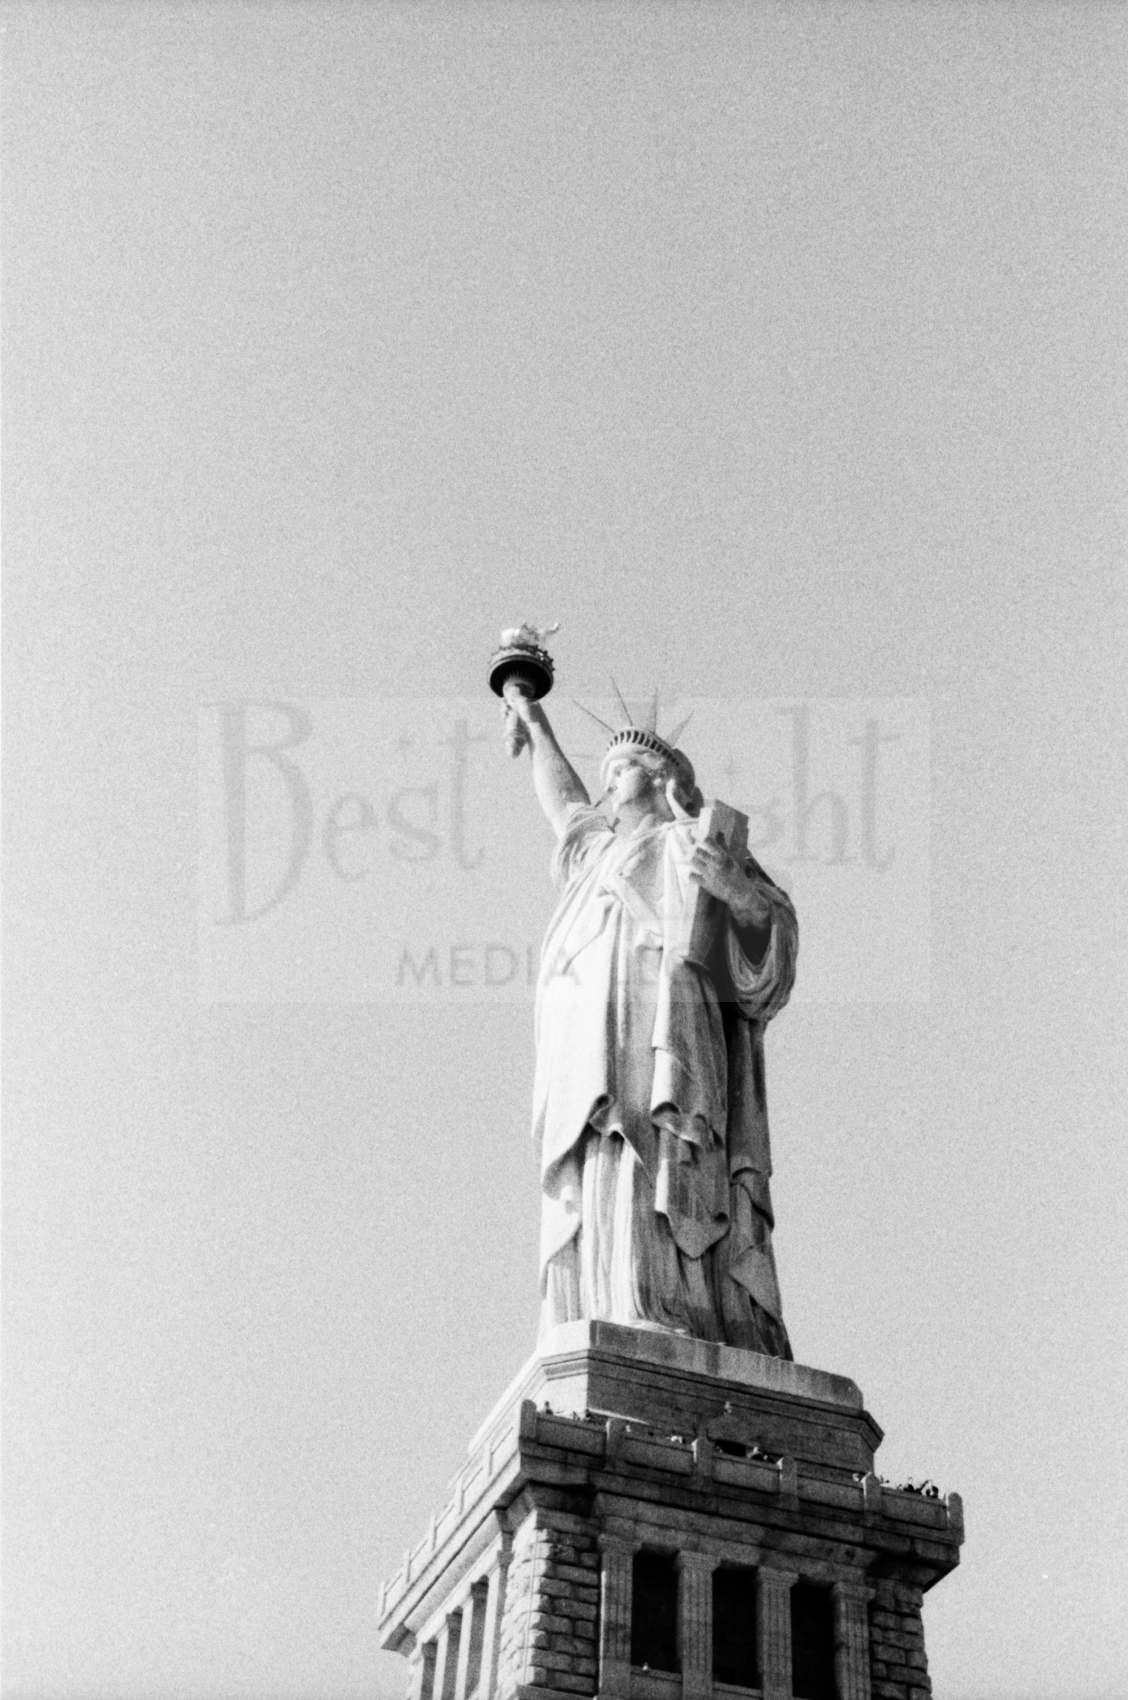 Fuji Neopan ISO 400 Pushed to 1600 -Statue of Liberty & Old Town Alexandria_20151001-24.jpg